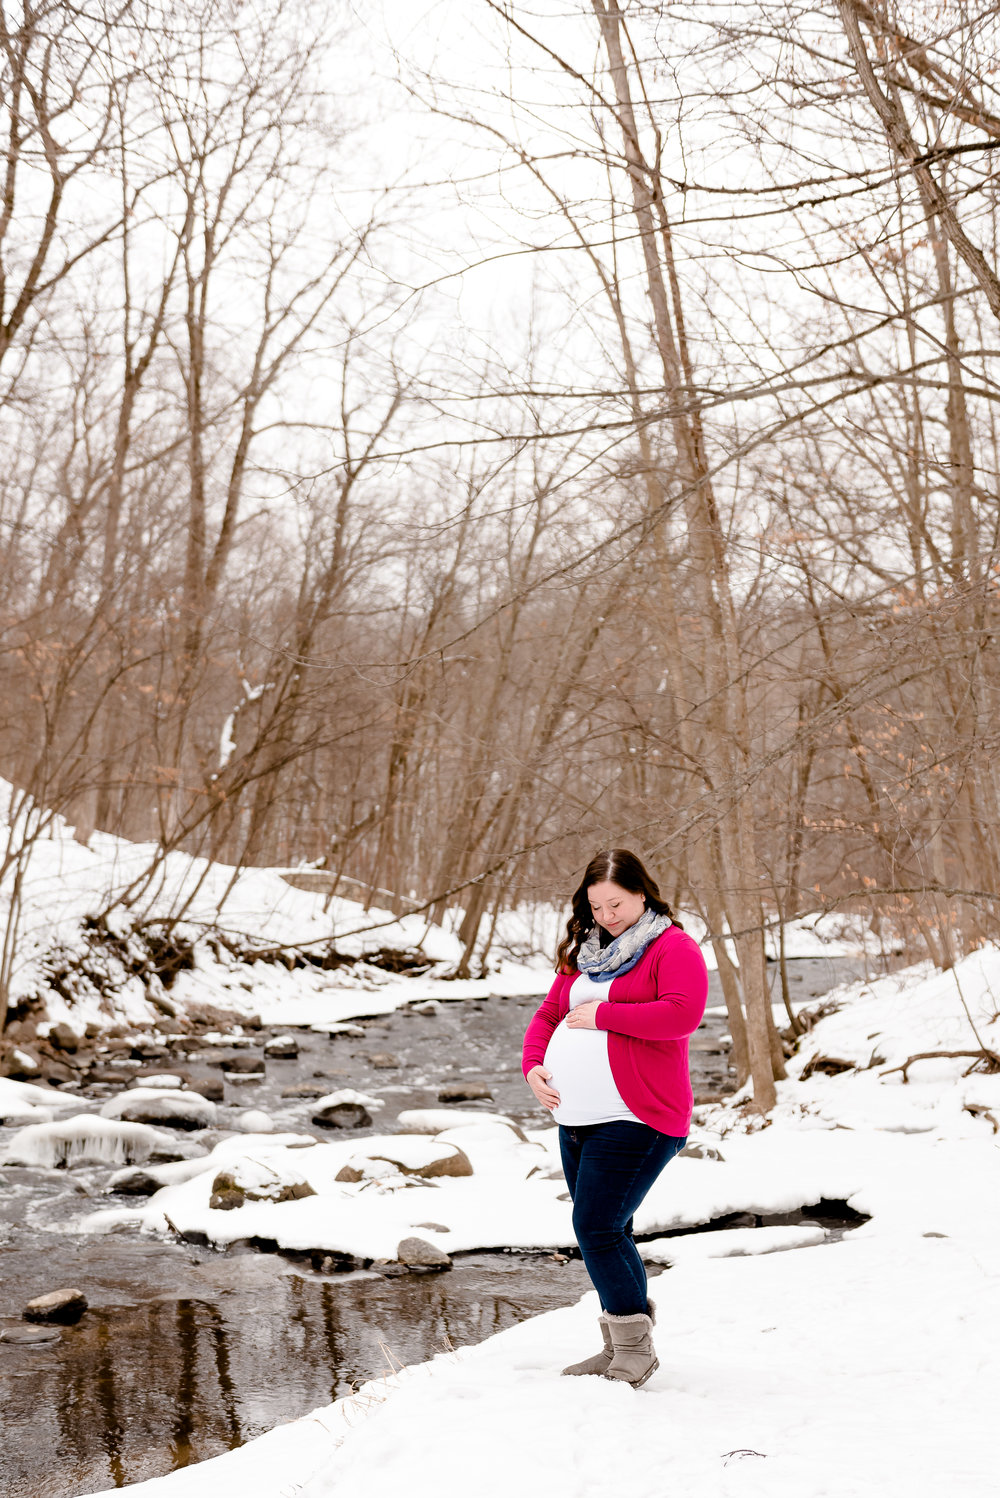 Snow Winter Maternity Portraits Outdoors - Twin Cities Maternity and Family Photographer